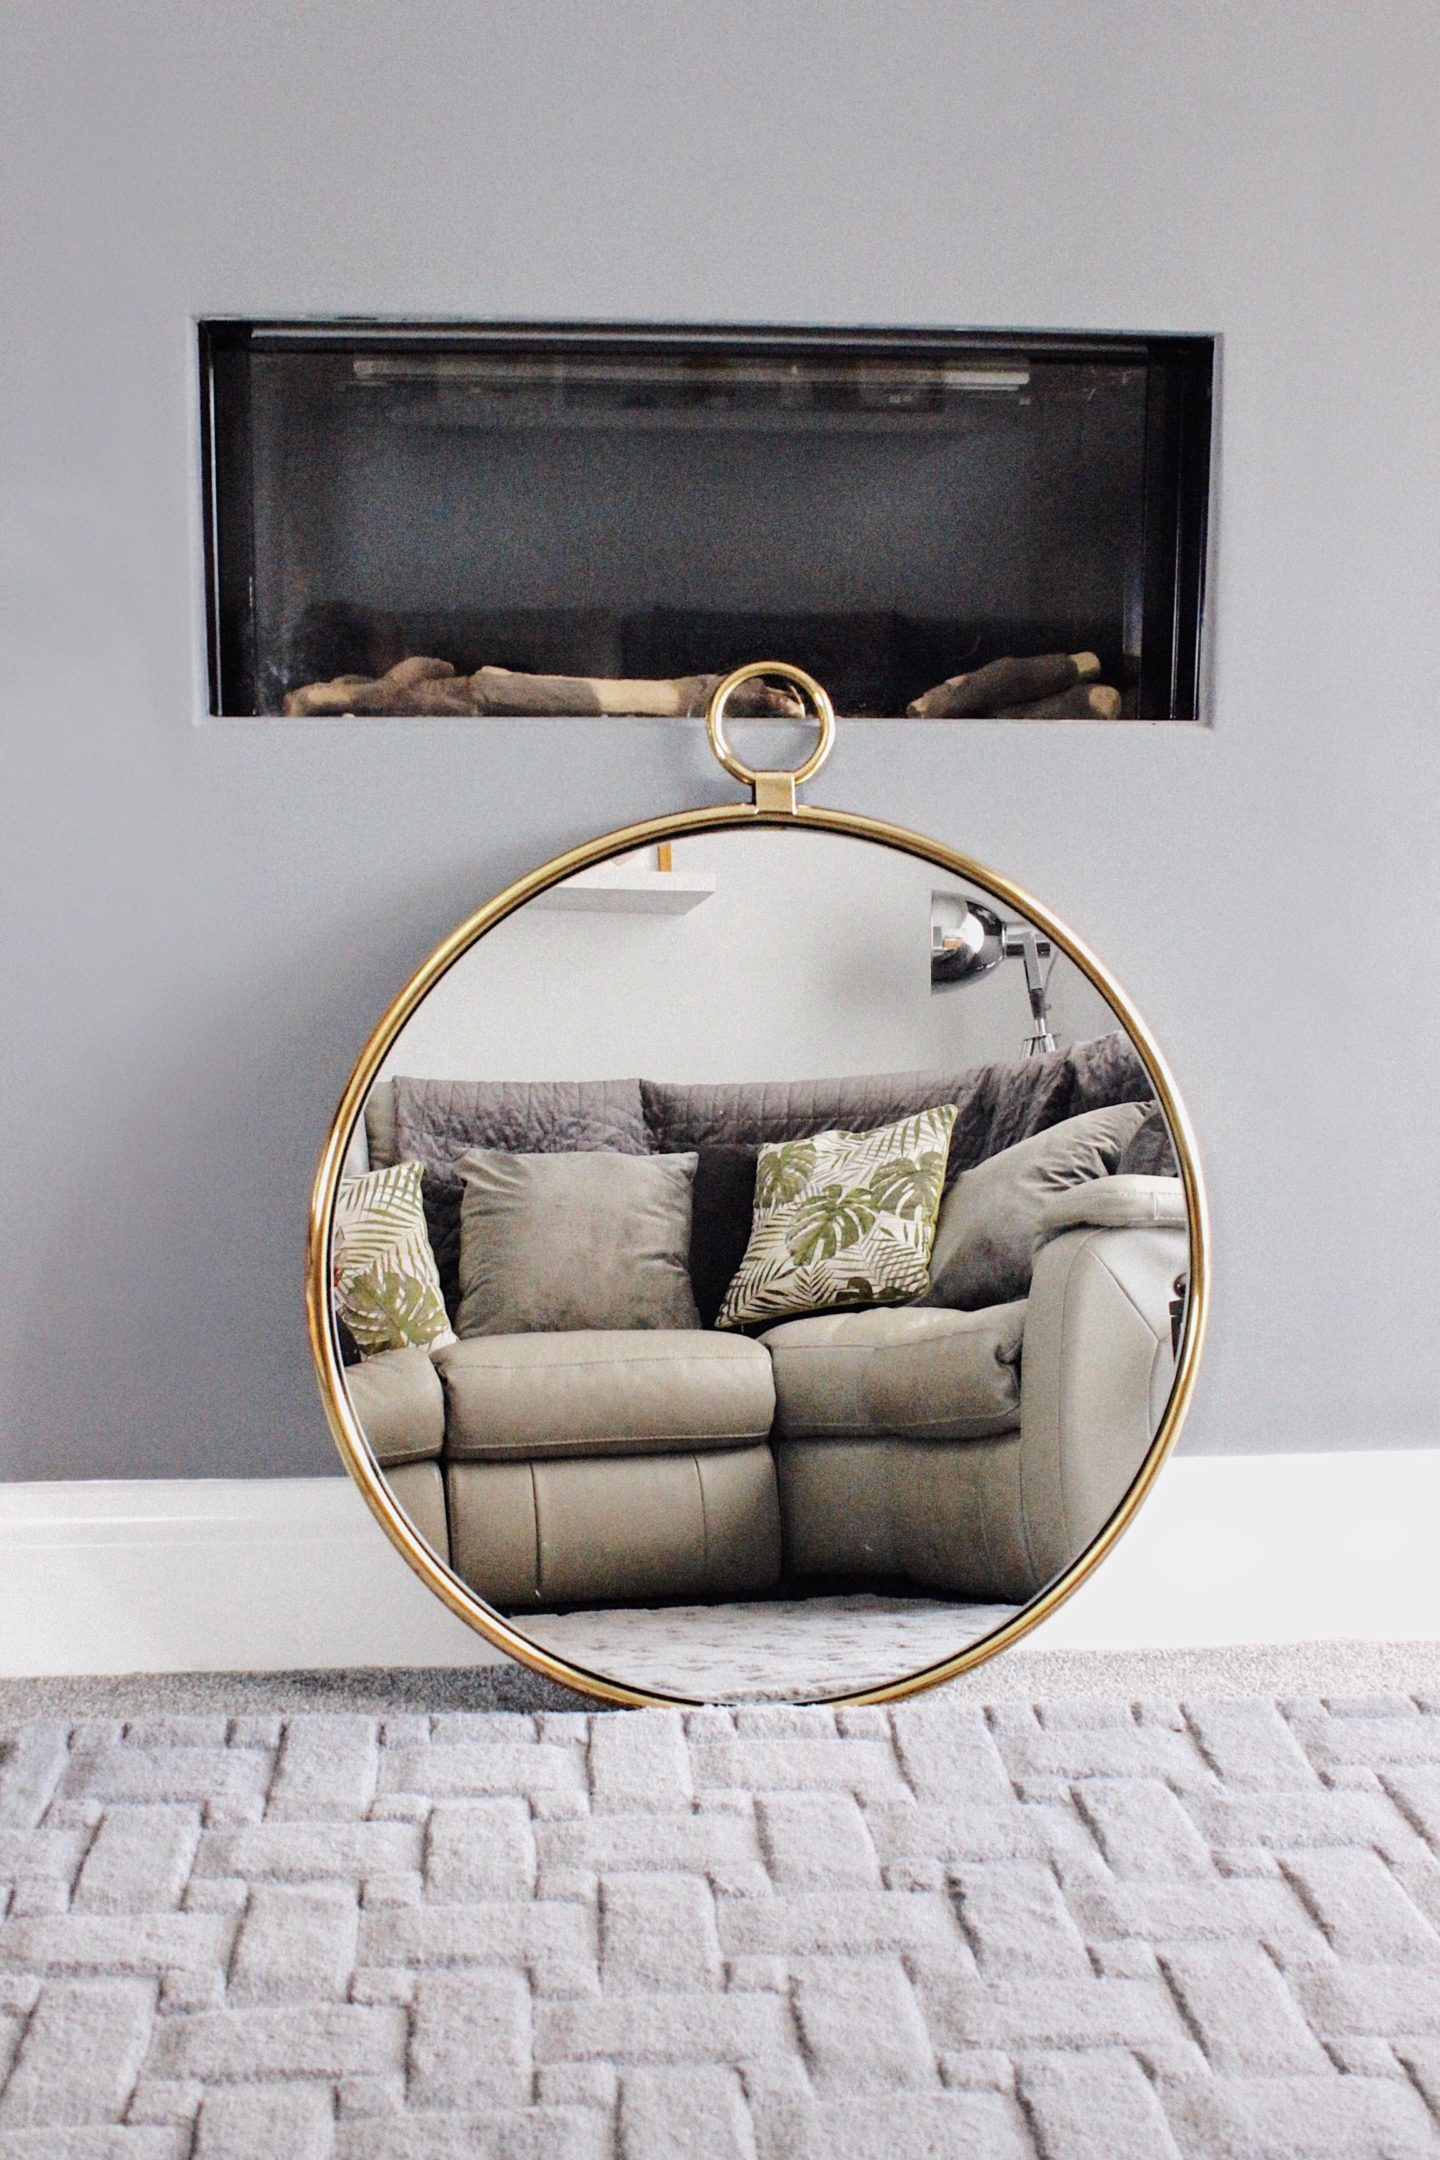 Next Circular Hanging Mirror